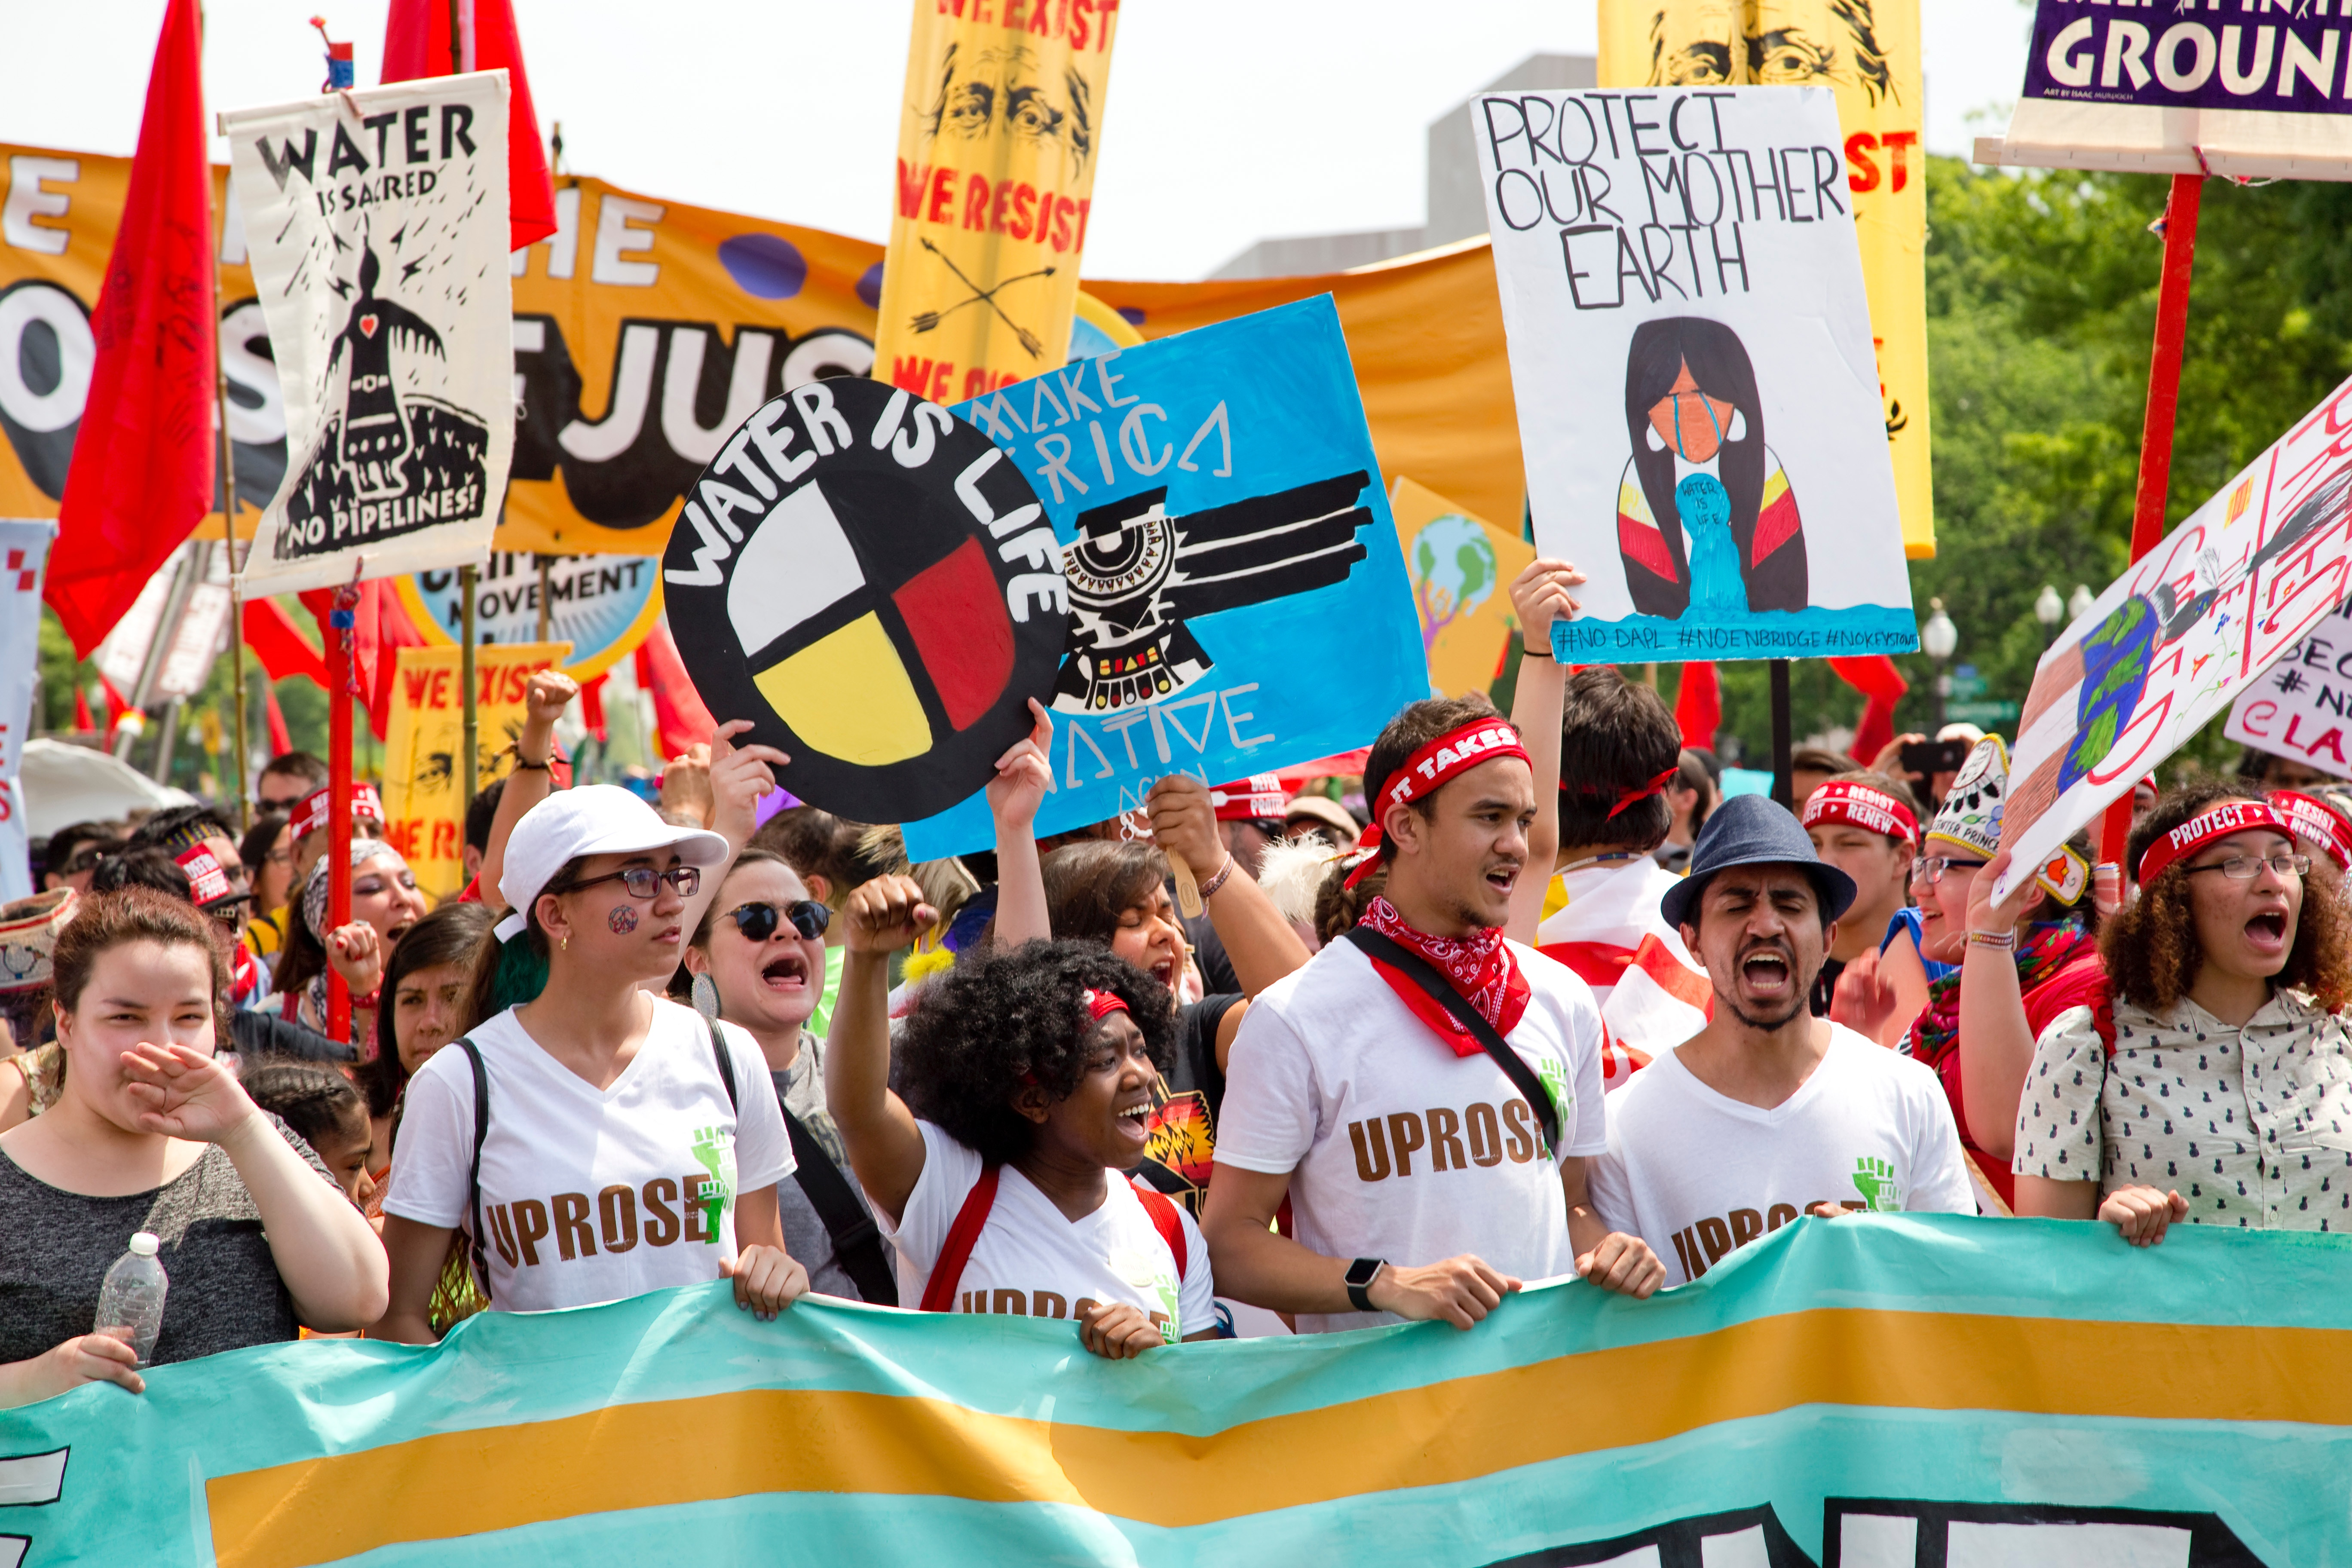 A group of environmental activists at a protest